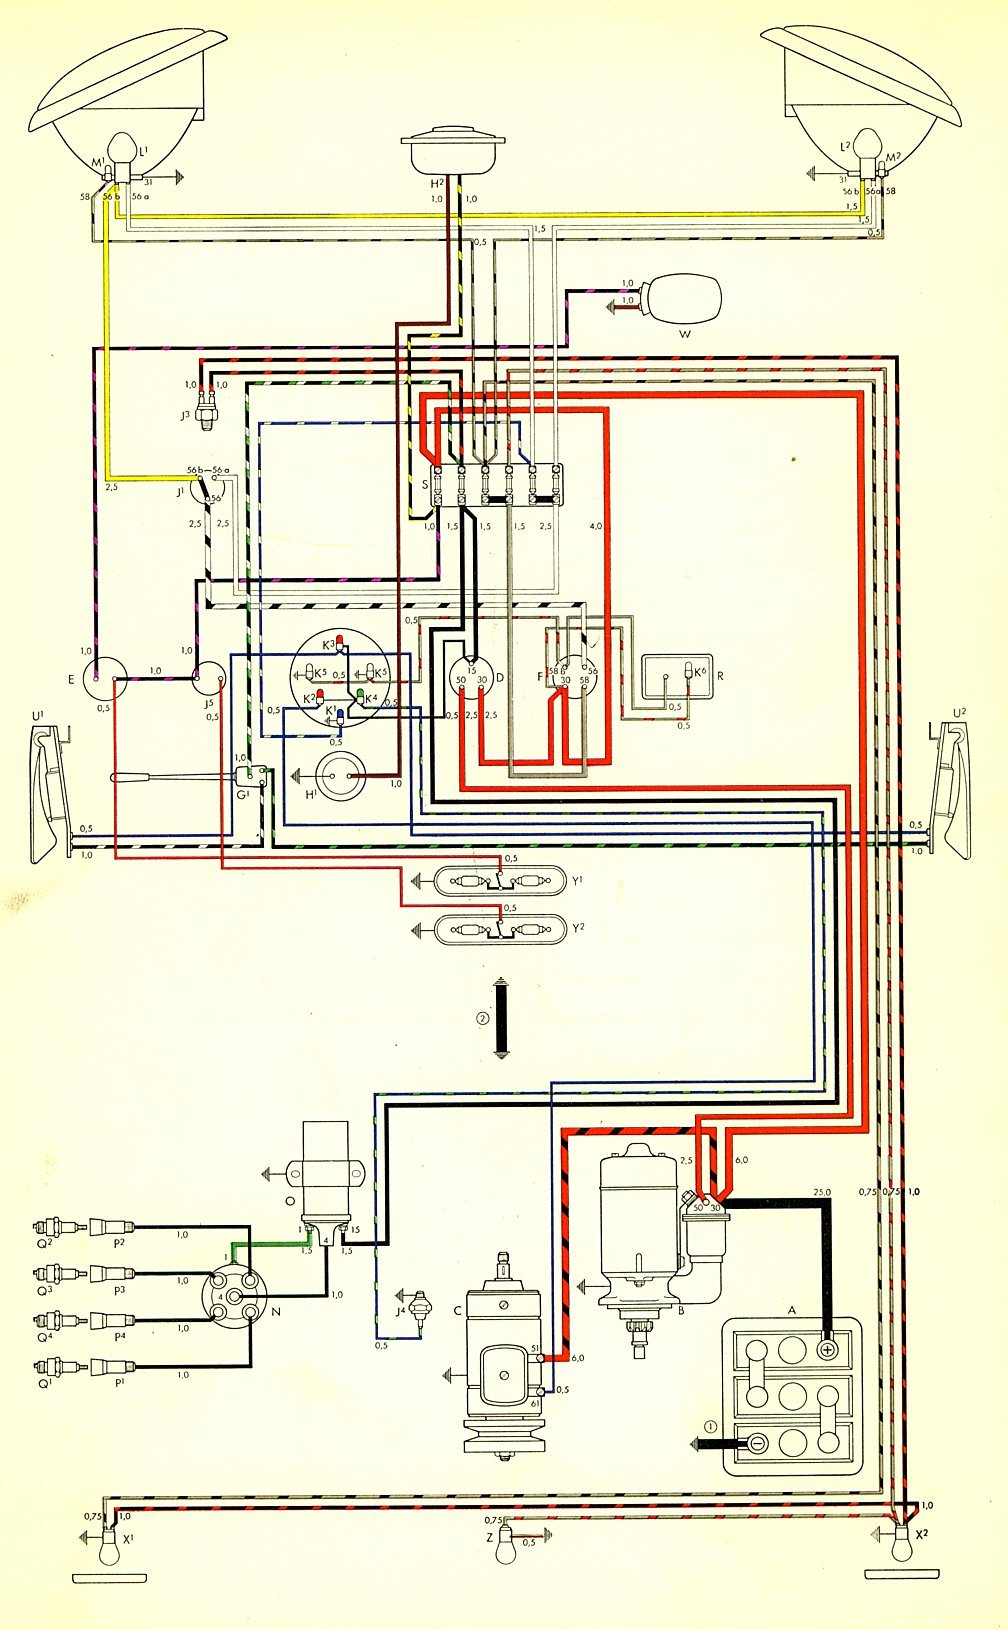 bus_59 thesamba com type 2 wiring diagrams wire diagram for radio at suagrazia.org